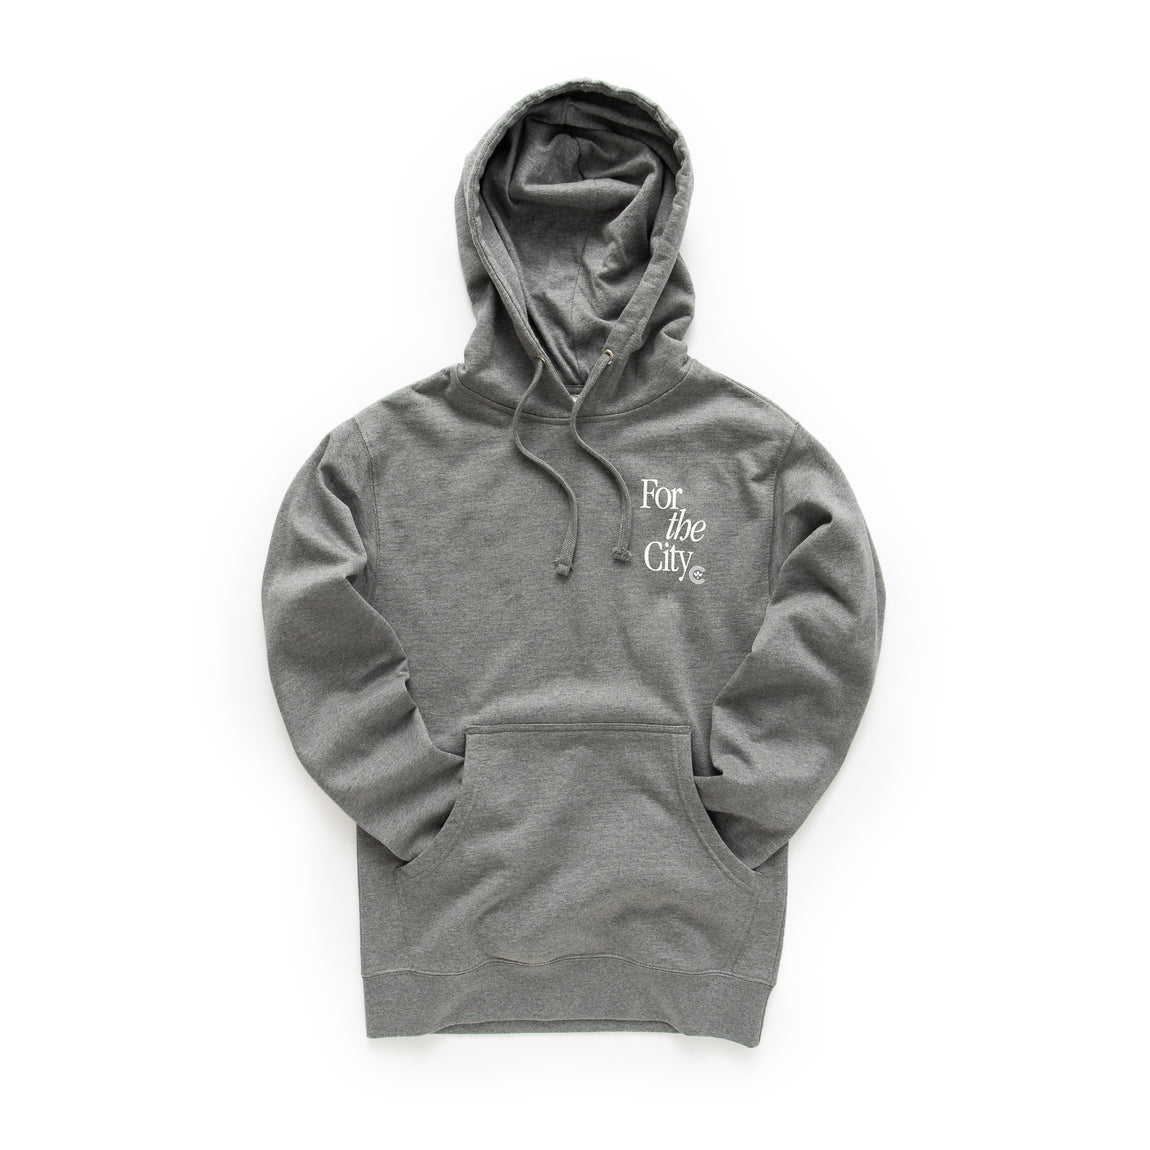 Centre For The City Fort Worth Hoodie (Gunmetal) - Centre For The City Fort Worth Hoodie (Gunmetal) -